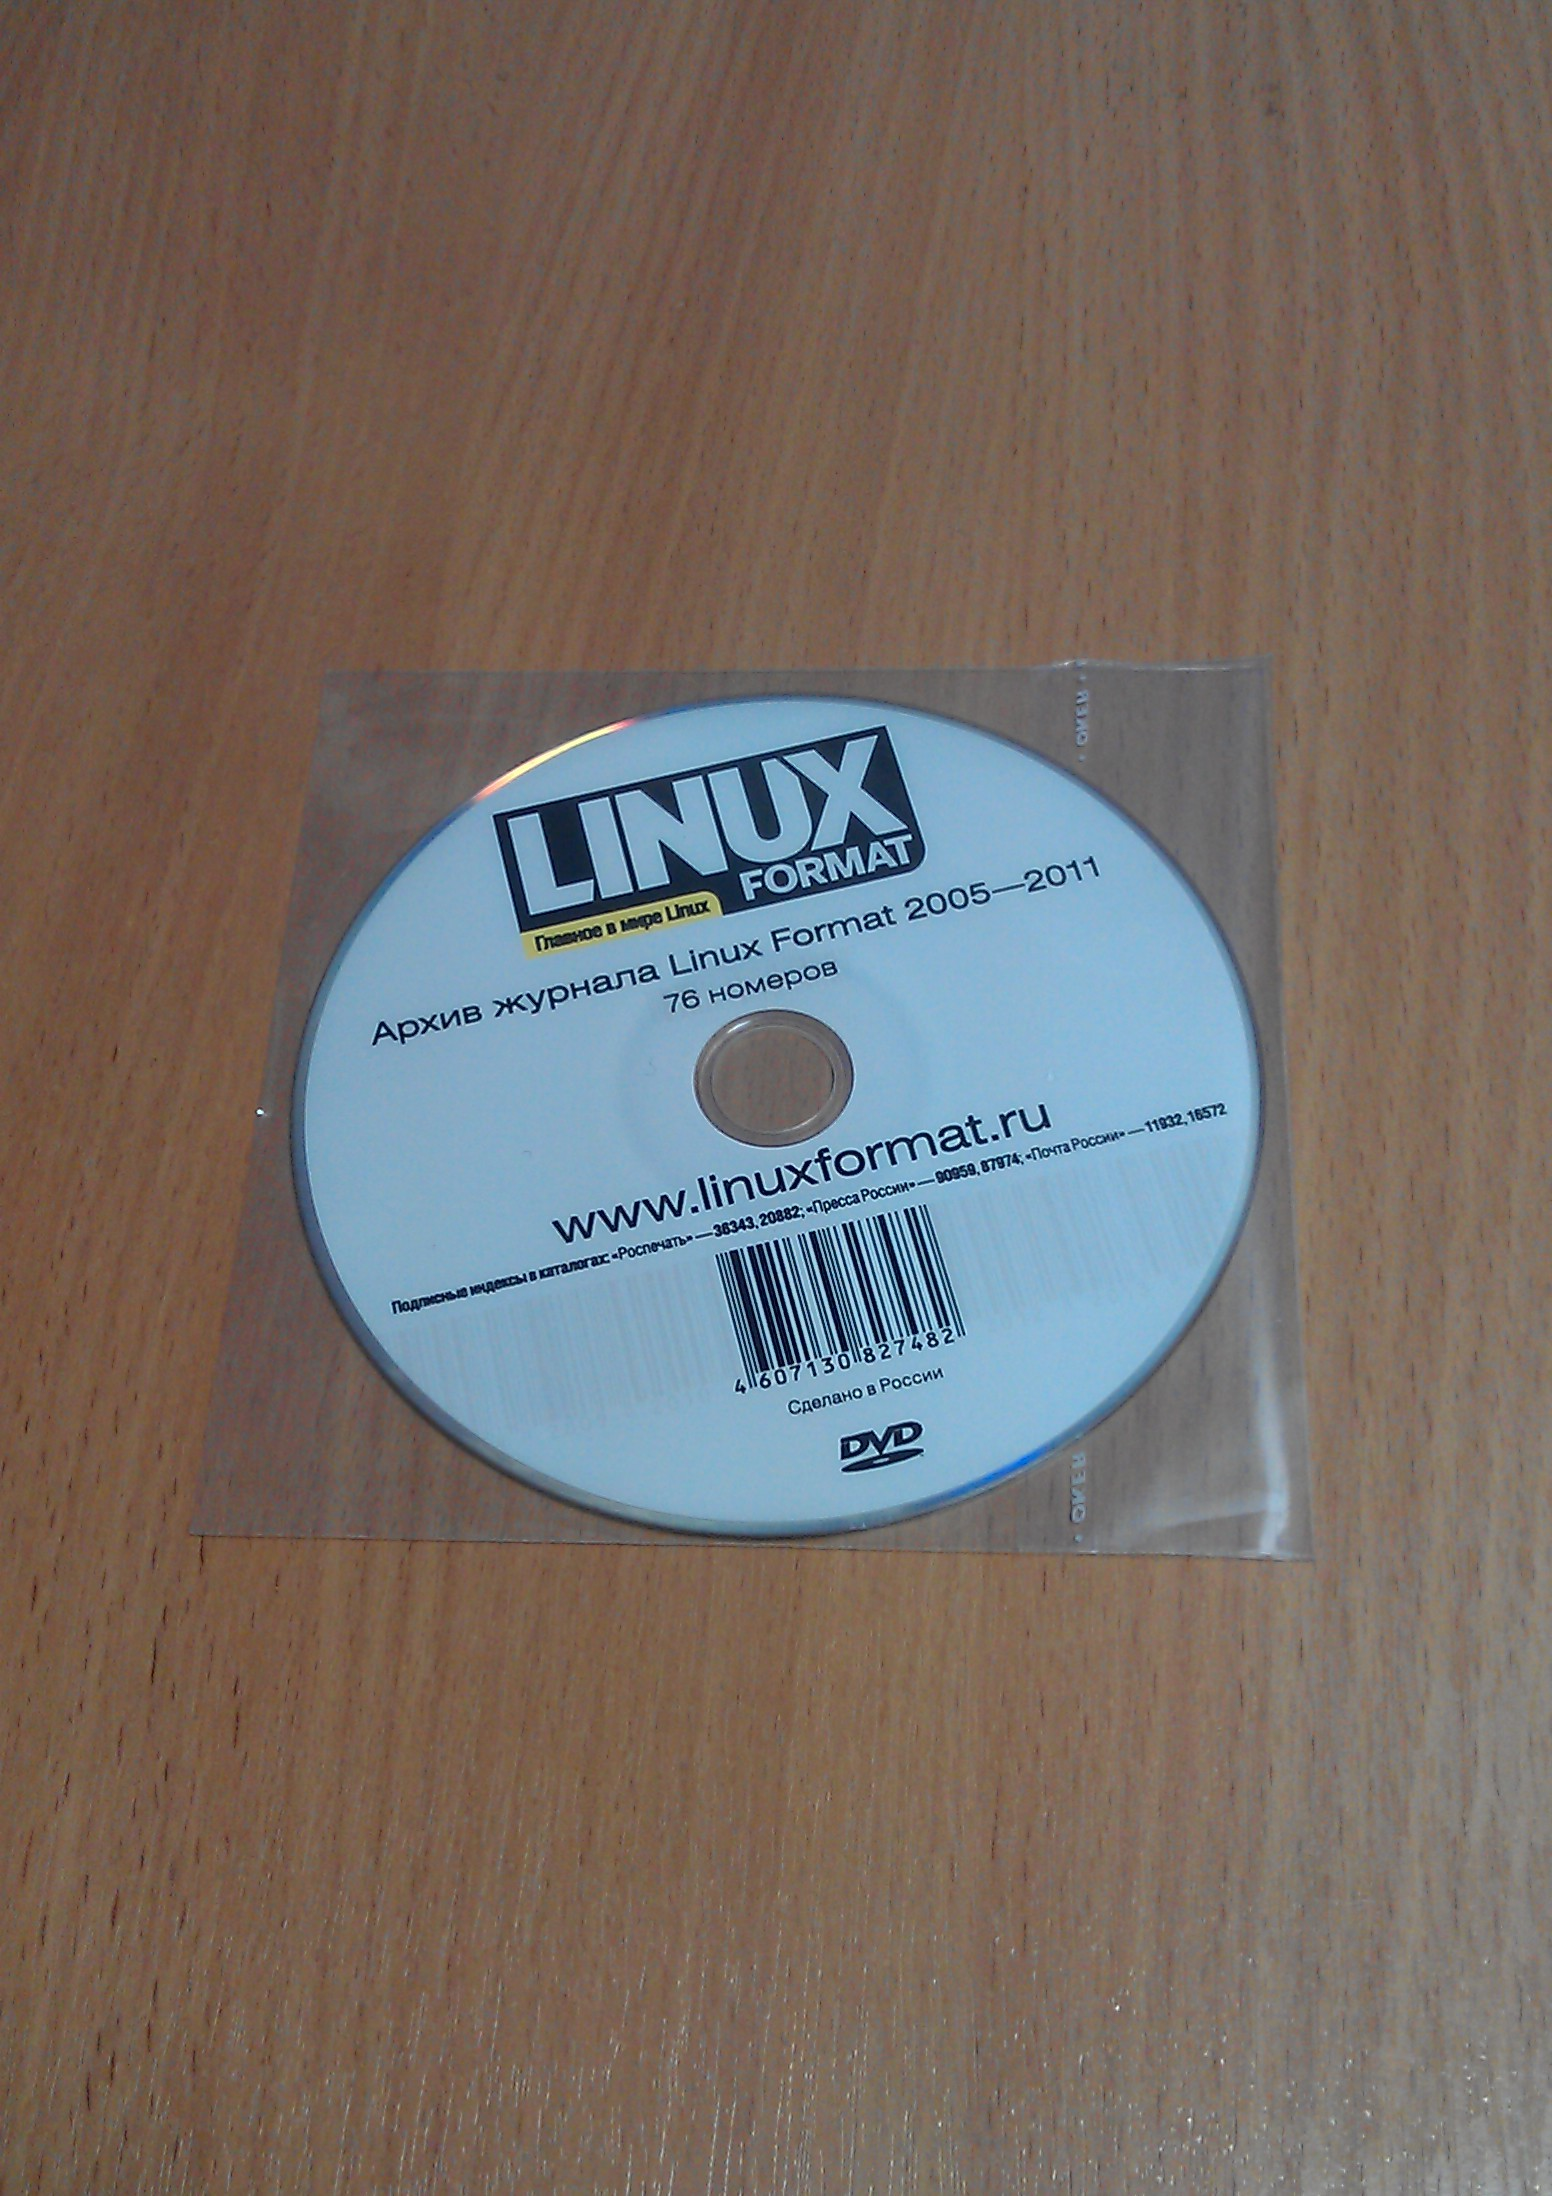 http://www.linuxformat.ru/sites/linuxformat.ru/files/usersfiles/arhivlxf2005-2011.jpg